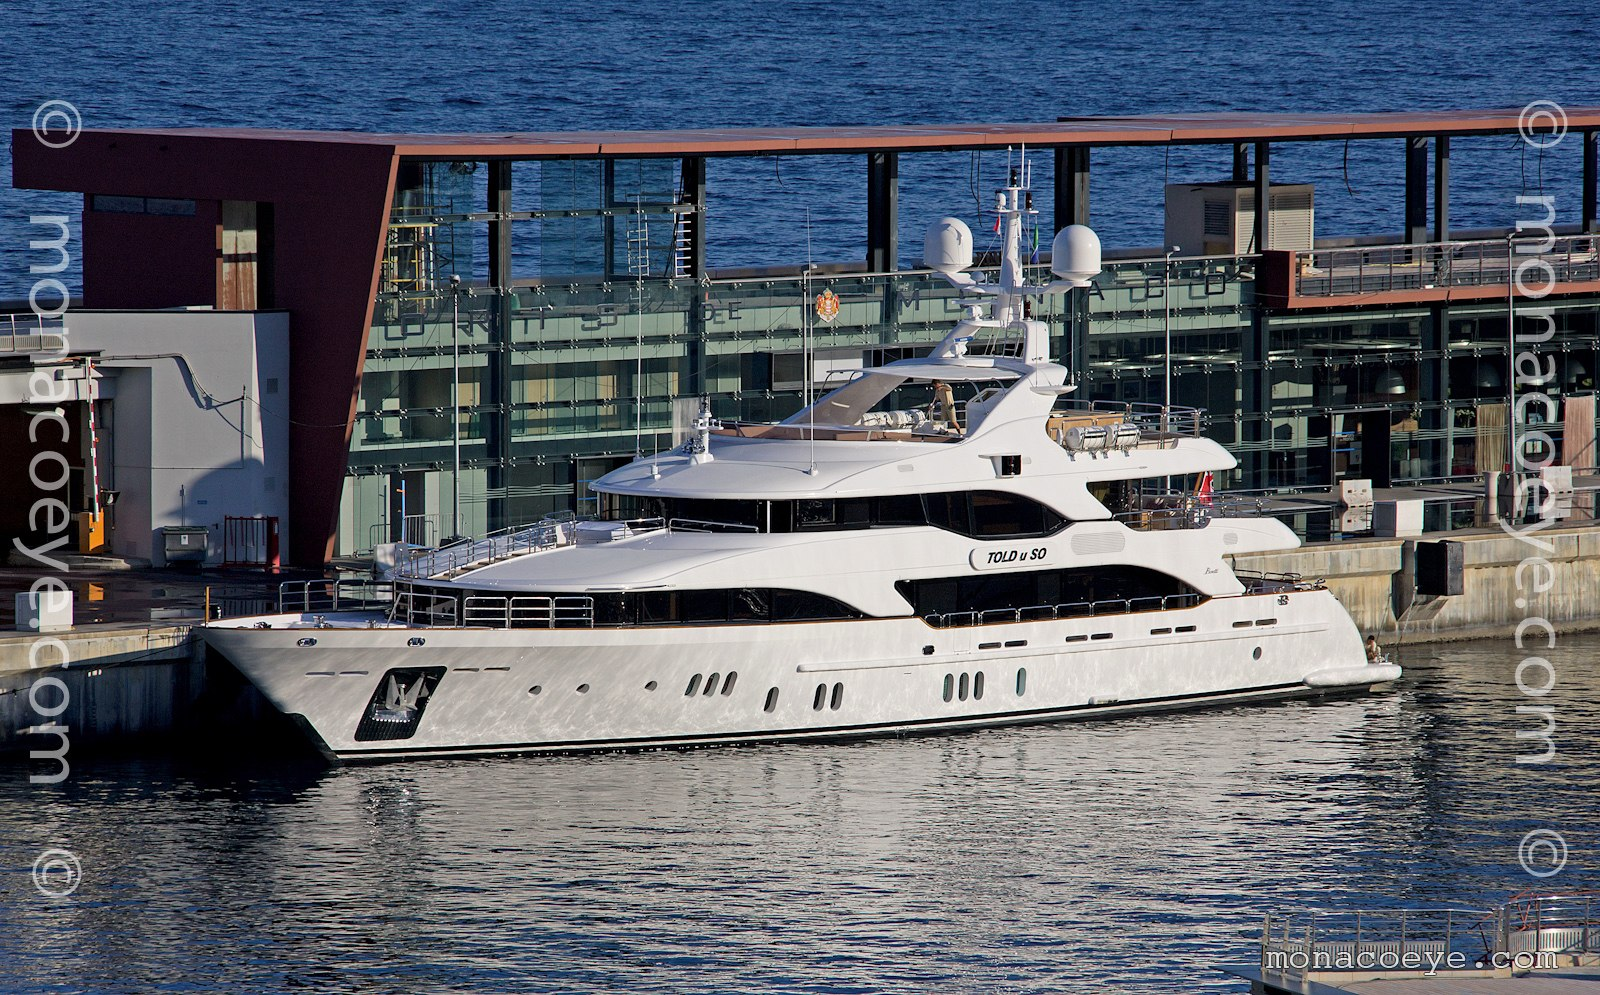 Told U So, 2011 design from Benetti and Stefano Righini. Turned up for the 2011 Grand Prix. New cruise terminal behind.